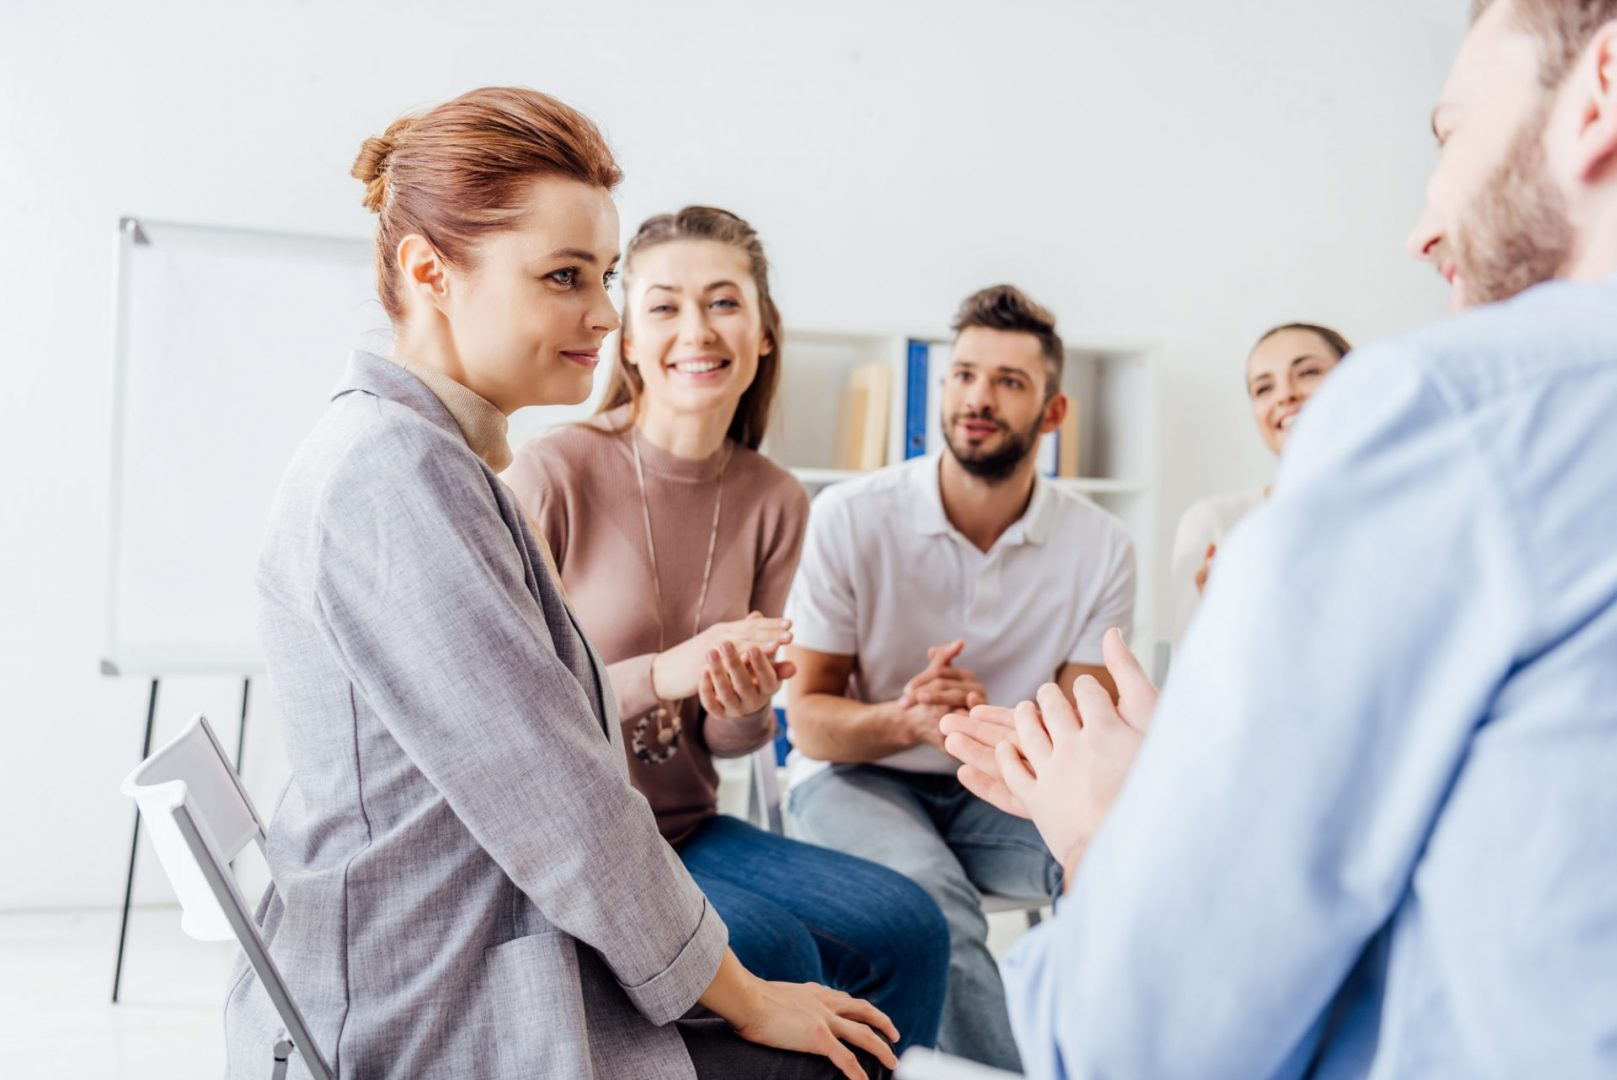 Getting Help for Trauma from an Outpatient Treatment Program